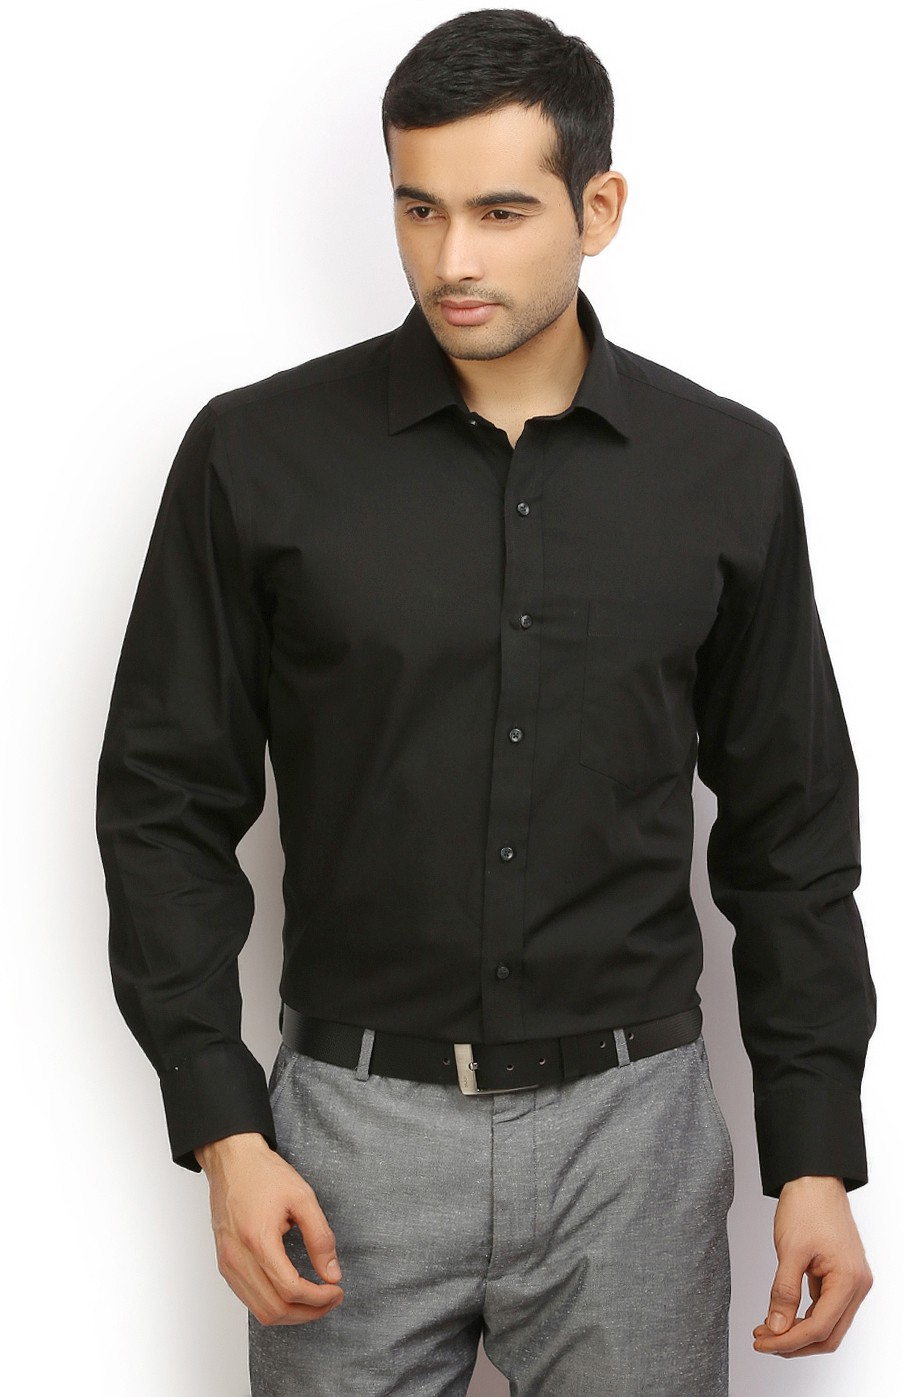 I-Voc Mens Solid Formal Black Shirt